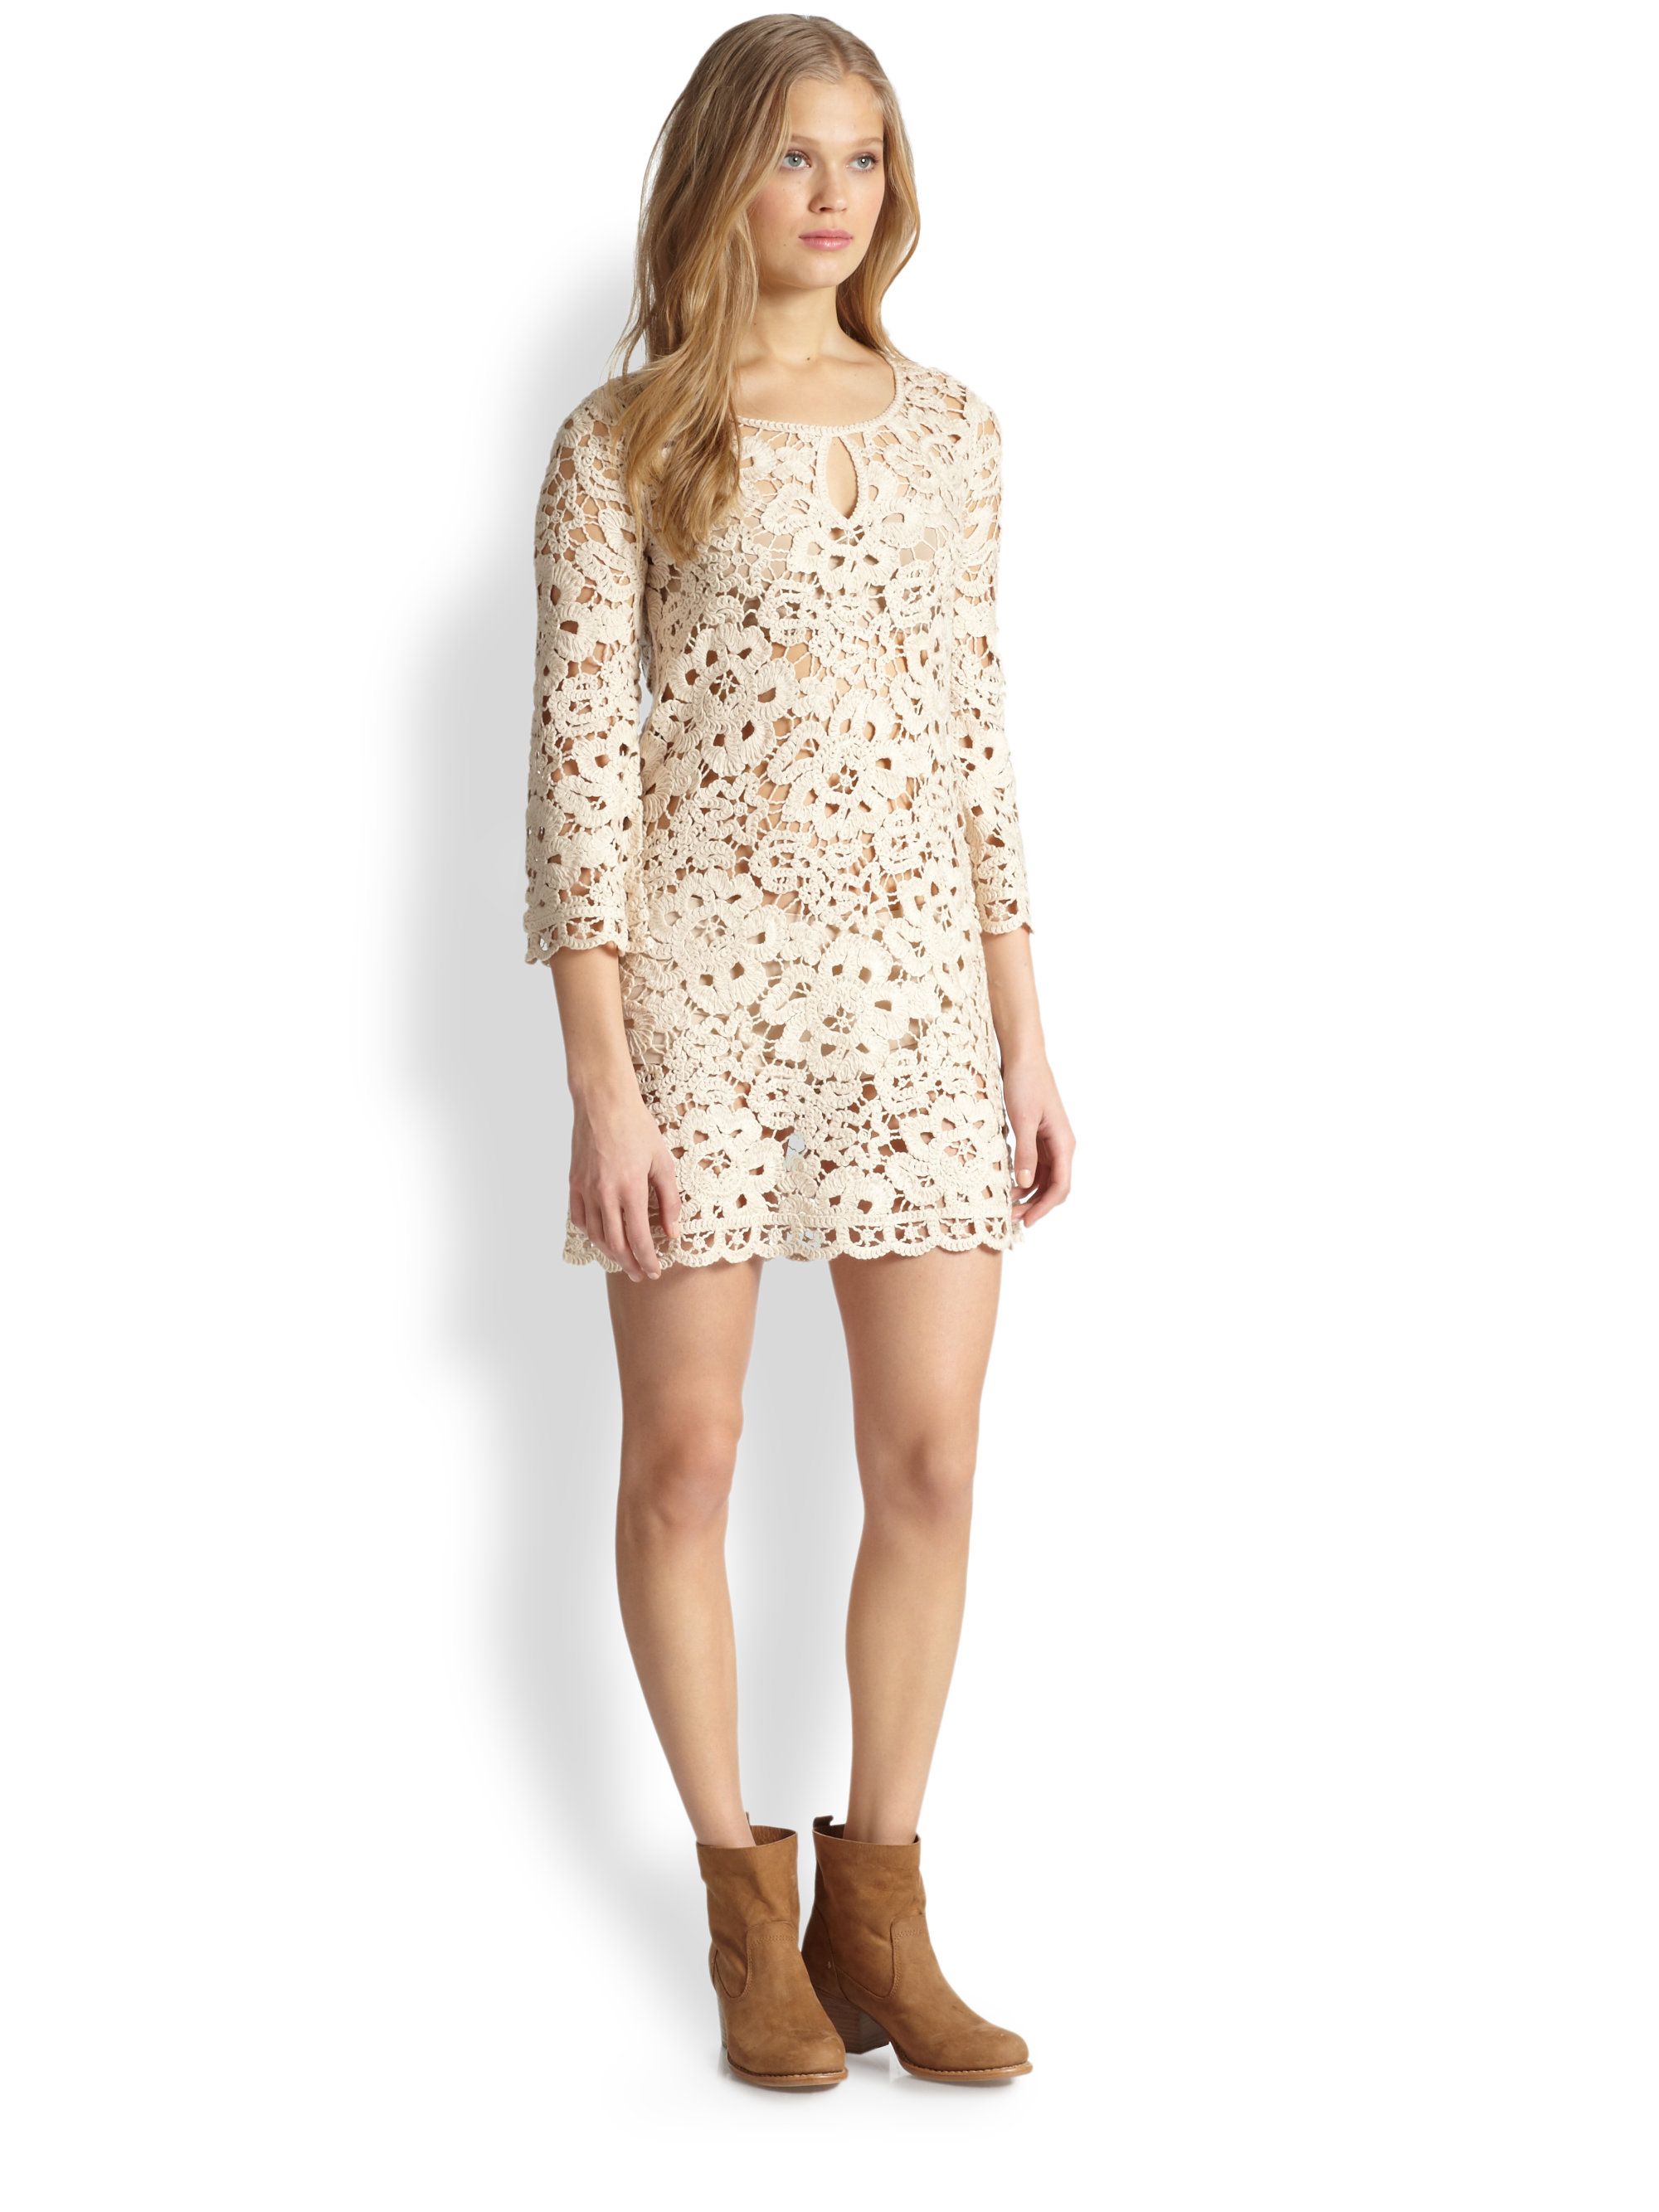 58431e5a270 Lyst - BCBGMAXAZRIA Crocheted Lace Dress in Natural